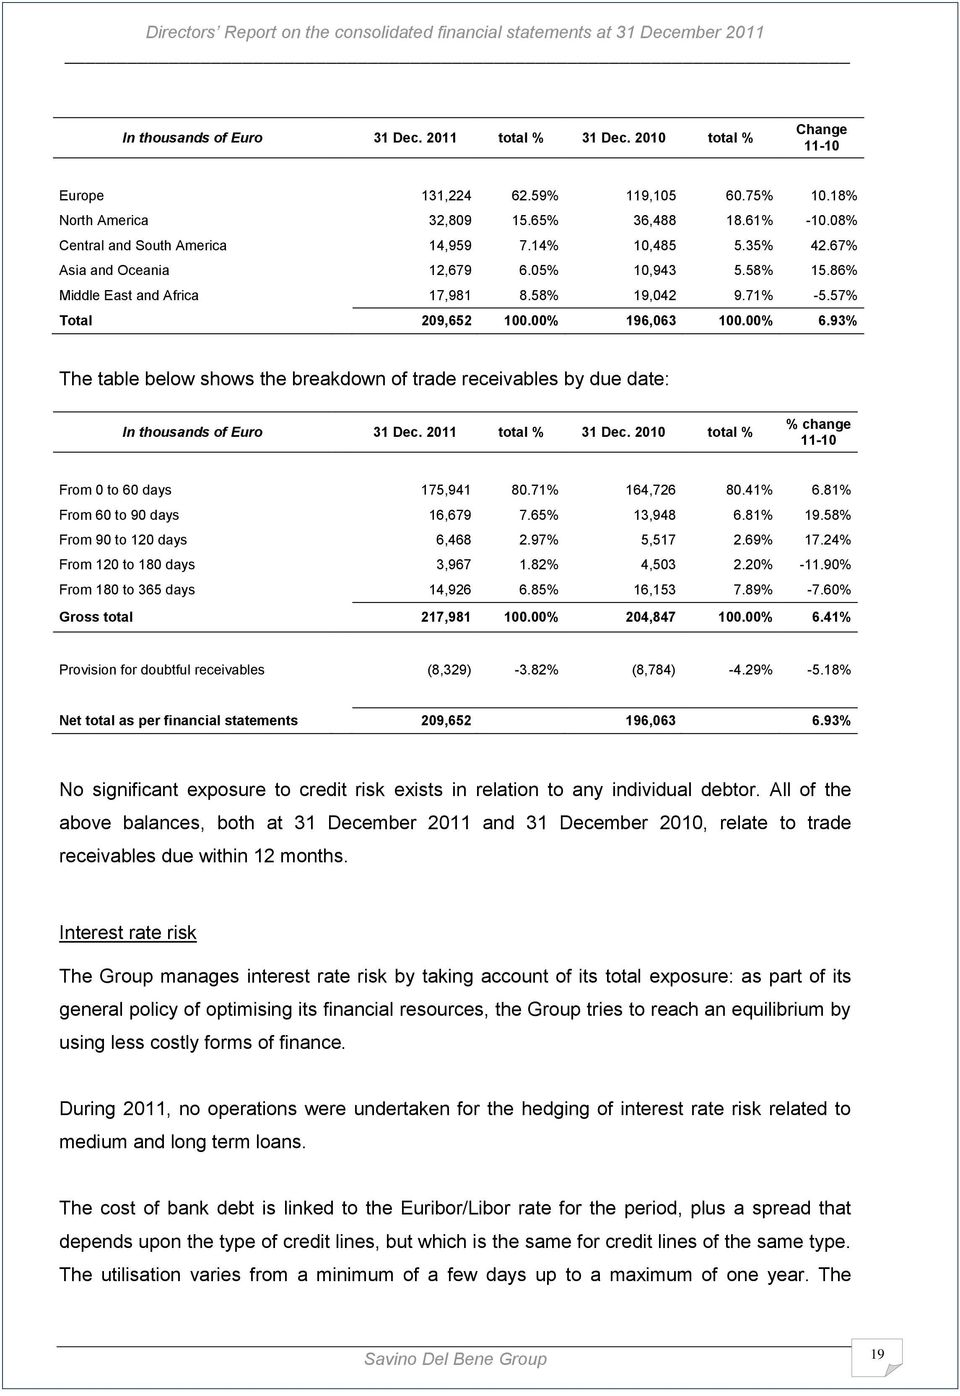 00% 6.93% The table below shows the breakdown of trade receivables by due date: In thousands of Euro 31 Dec. 2011 total % 31 Dec. 2010 total % % change 11-10 From 0 to 60 days 175,941 80.